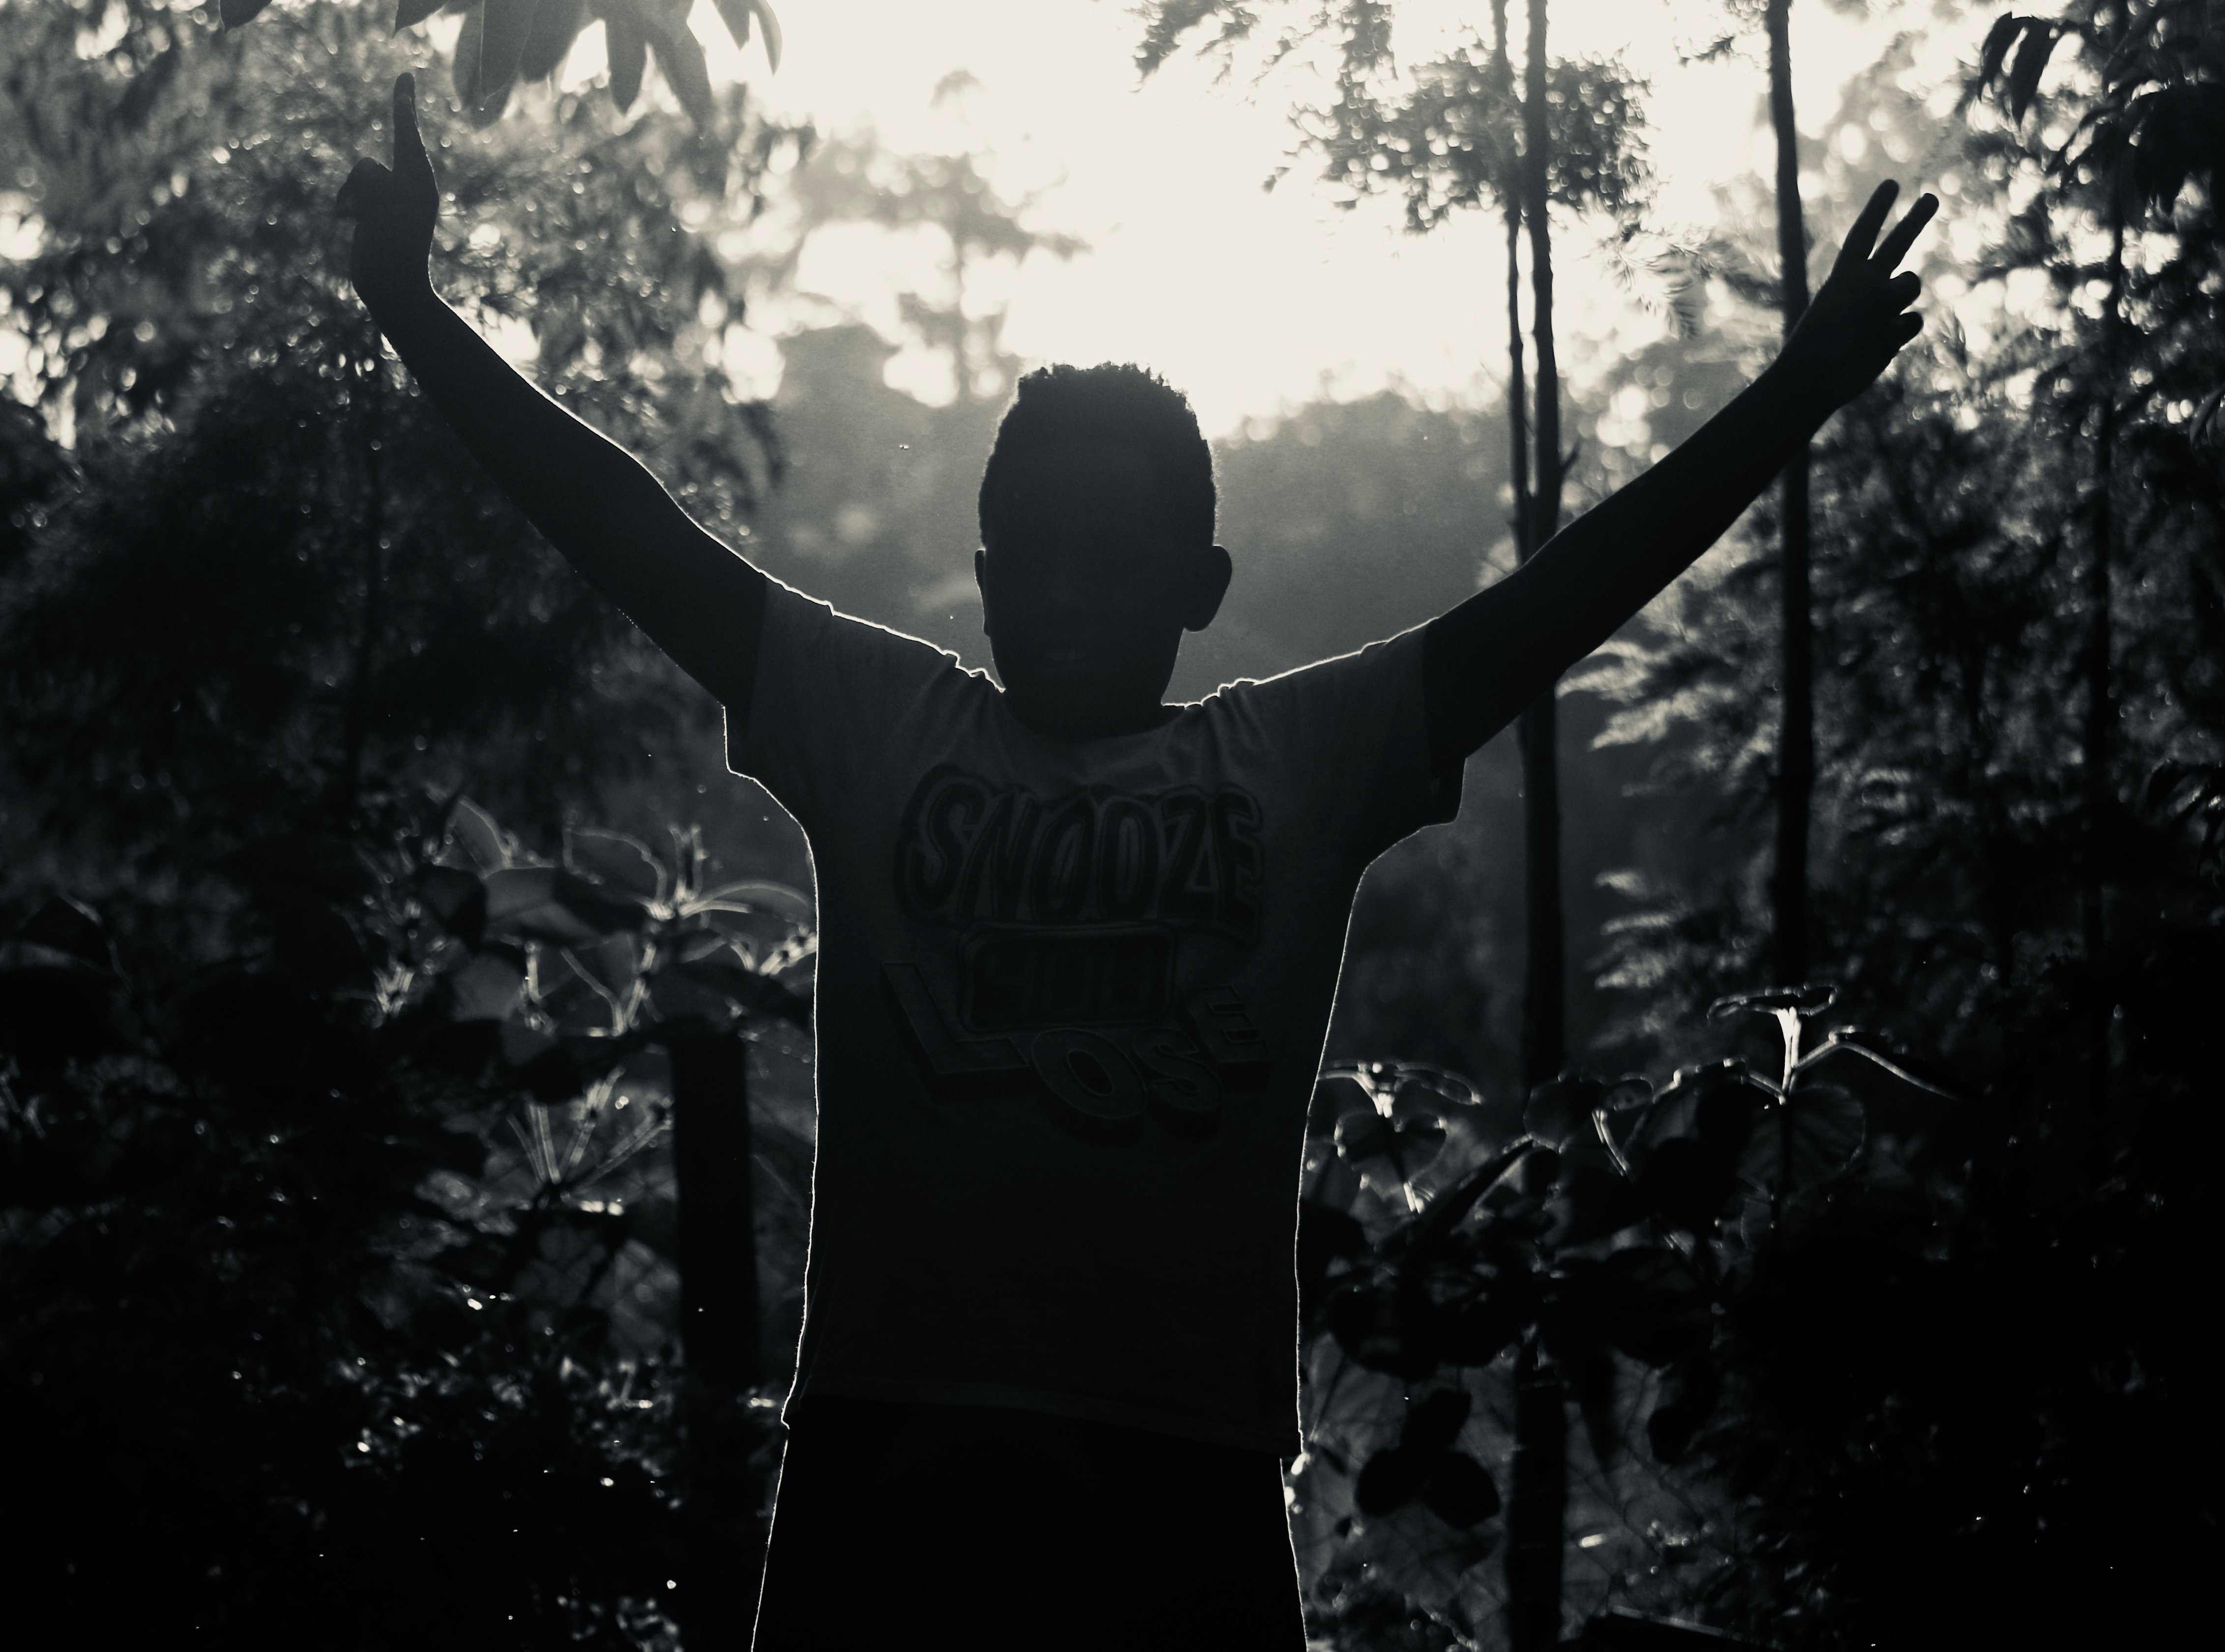 Gray Scale Photo of Man in White Shirt Raising His Hand Near Plants, Nature, Young, Wear, Trees, HQ Photo